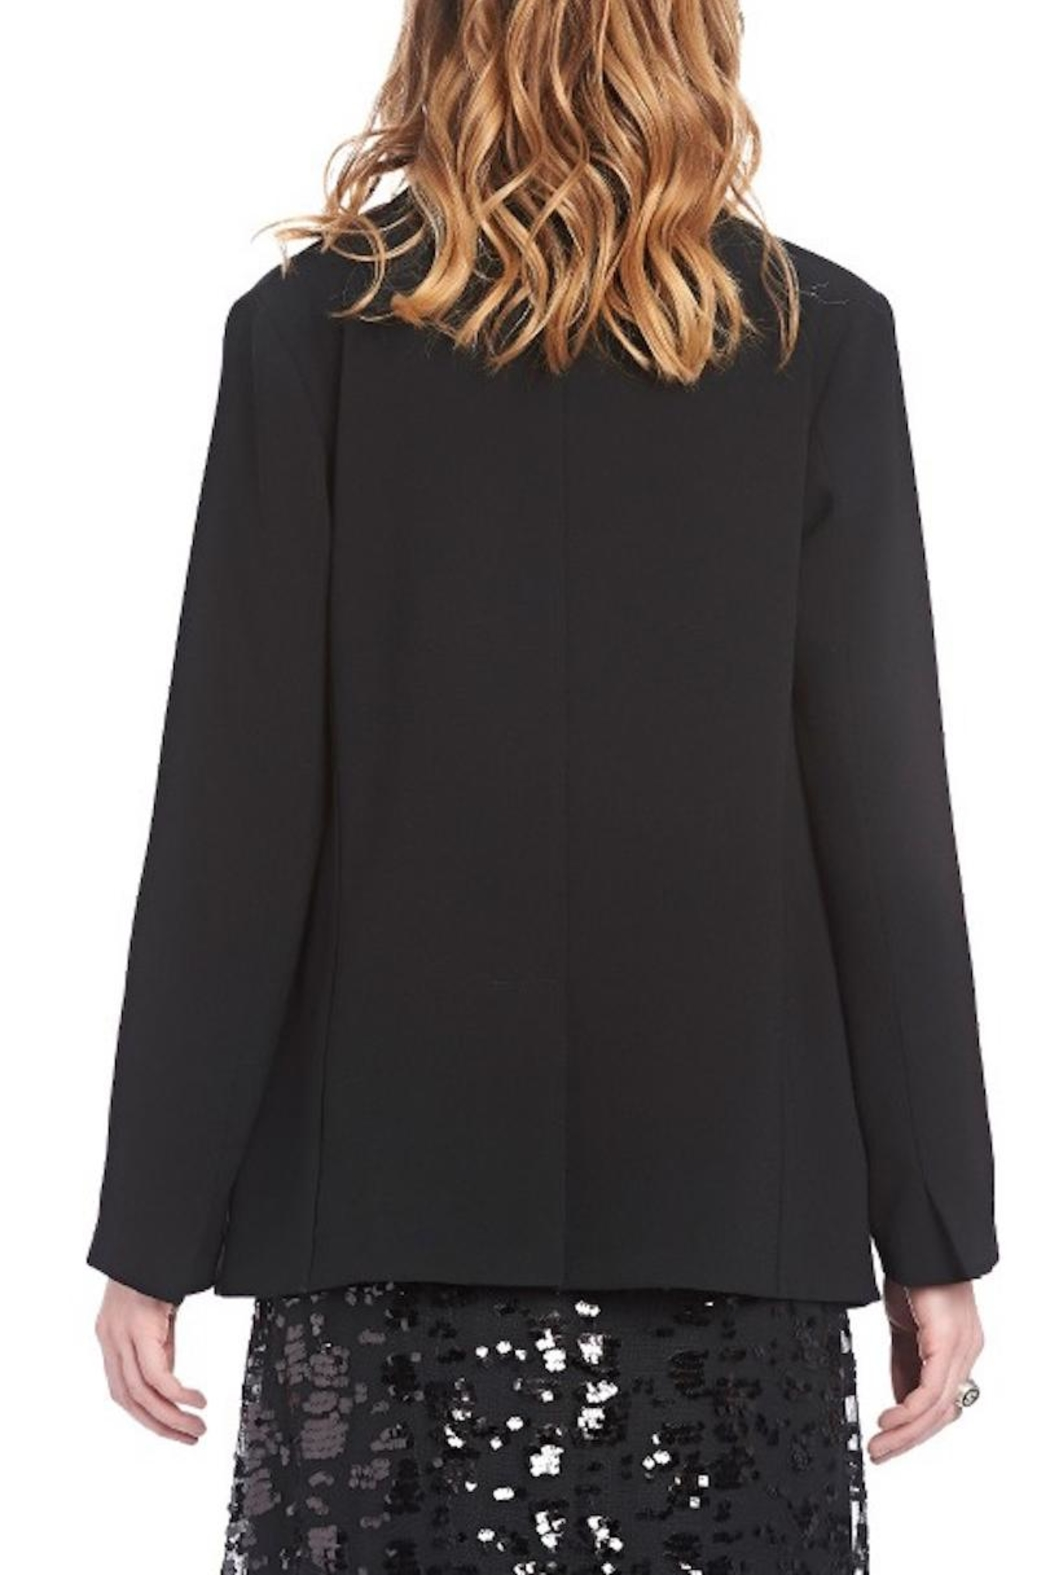 Ottod'ame Flowing Fabric Jacket - Front Full Image